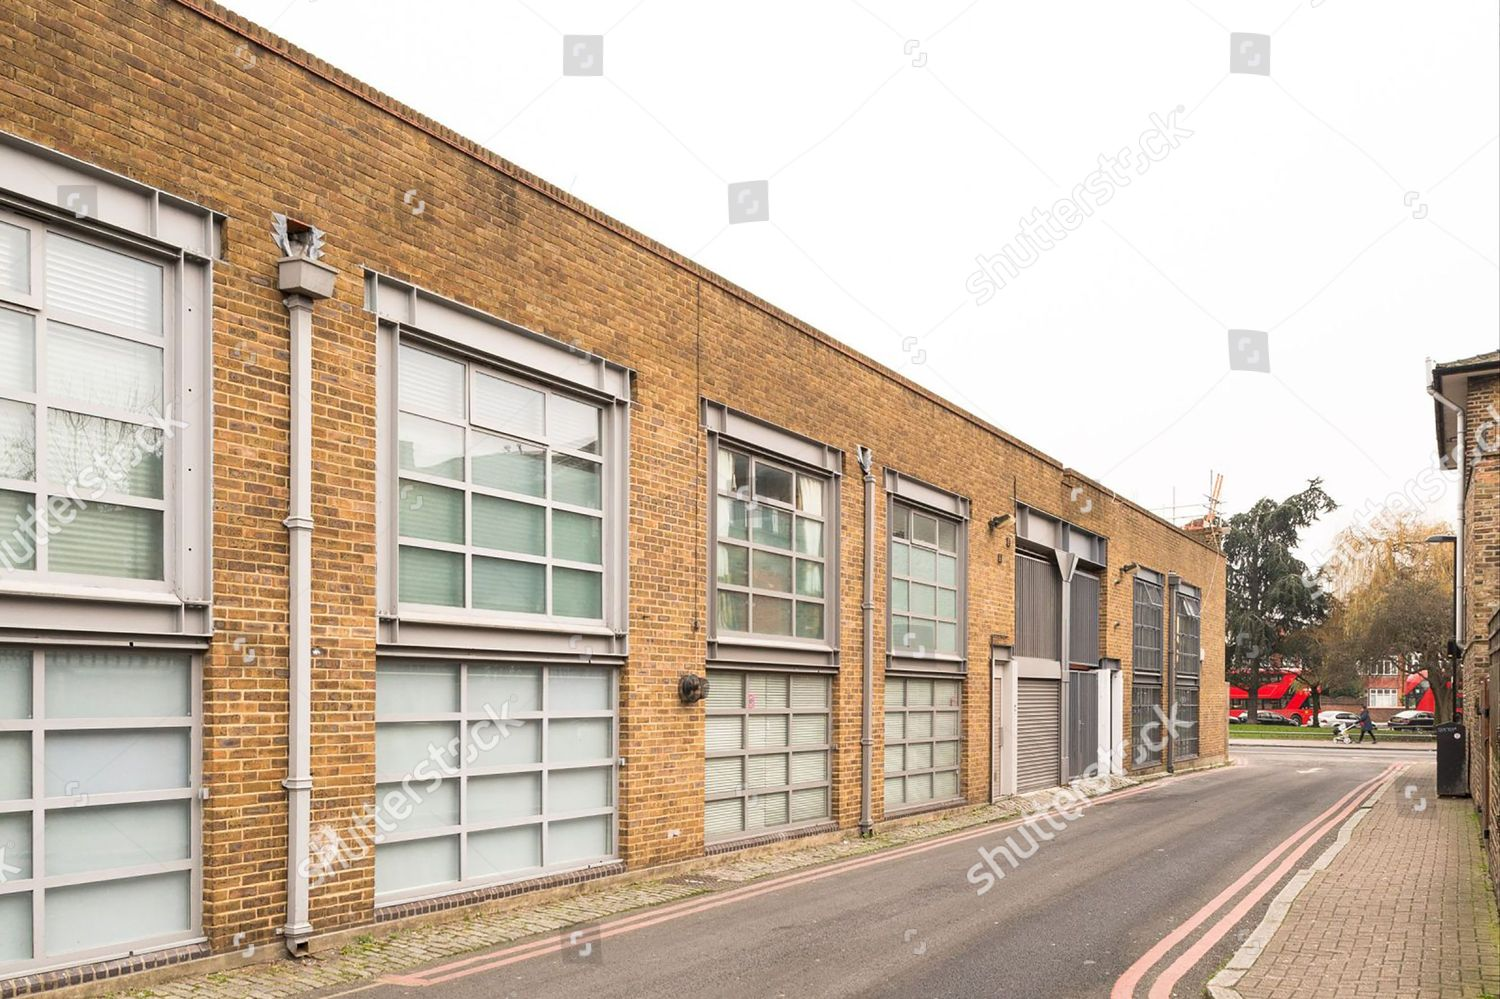 Sale of tram shed turned into a home and given a celebrity makeover london uk jul 2017 stock image by modernhouse for editorial use jul 2017